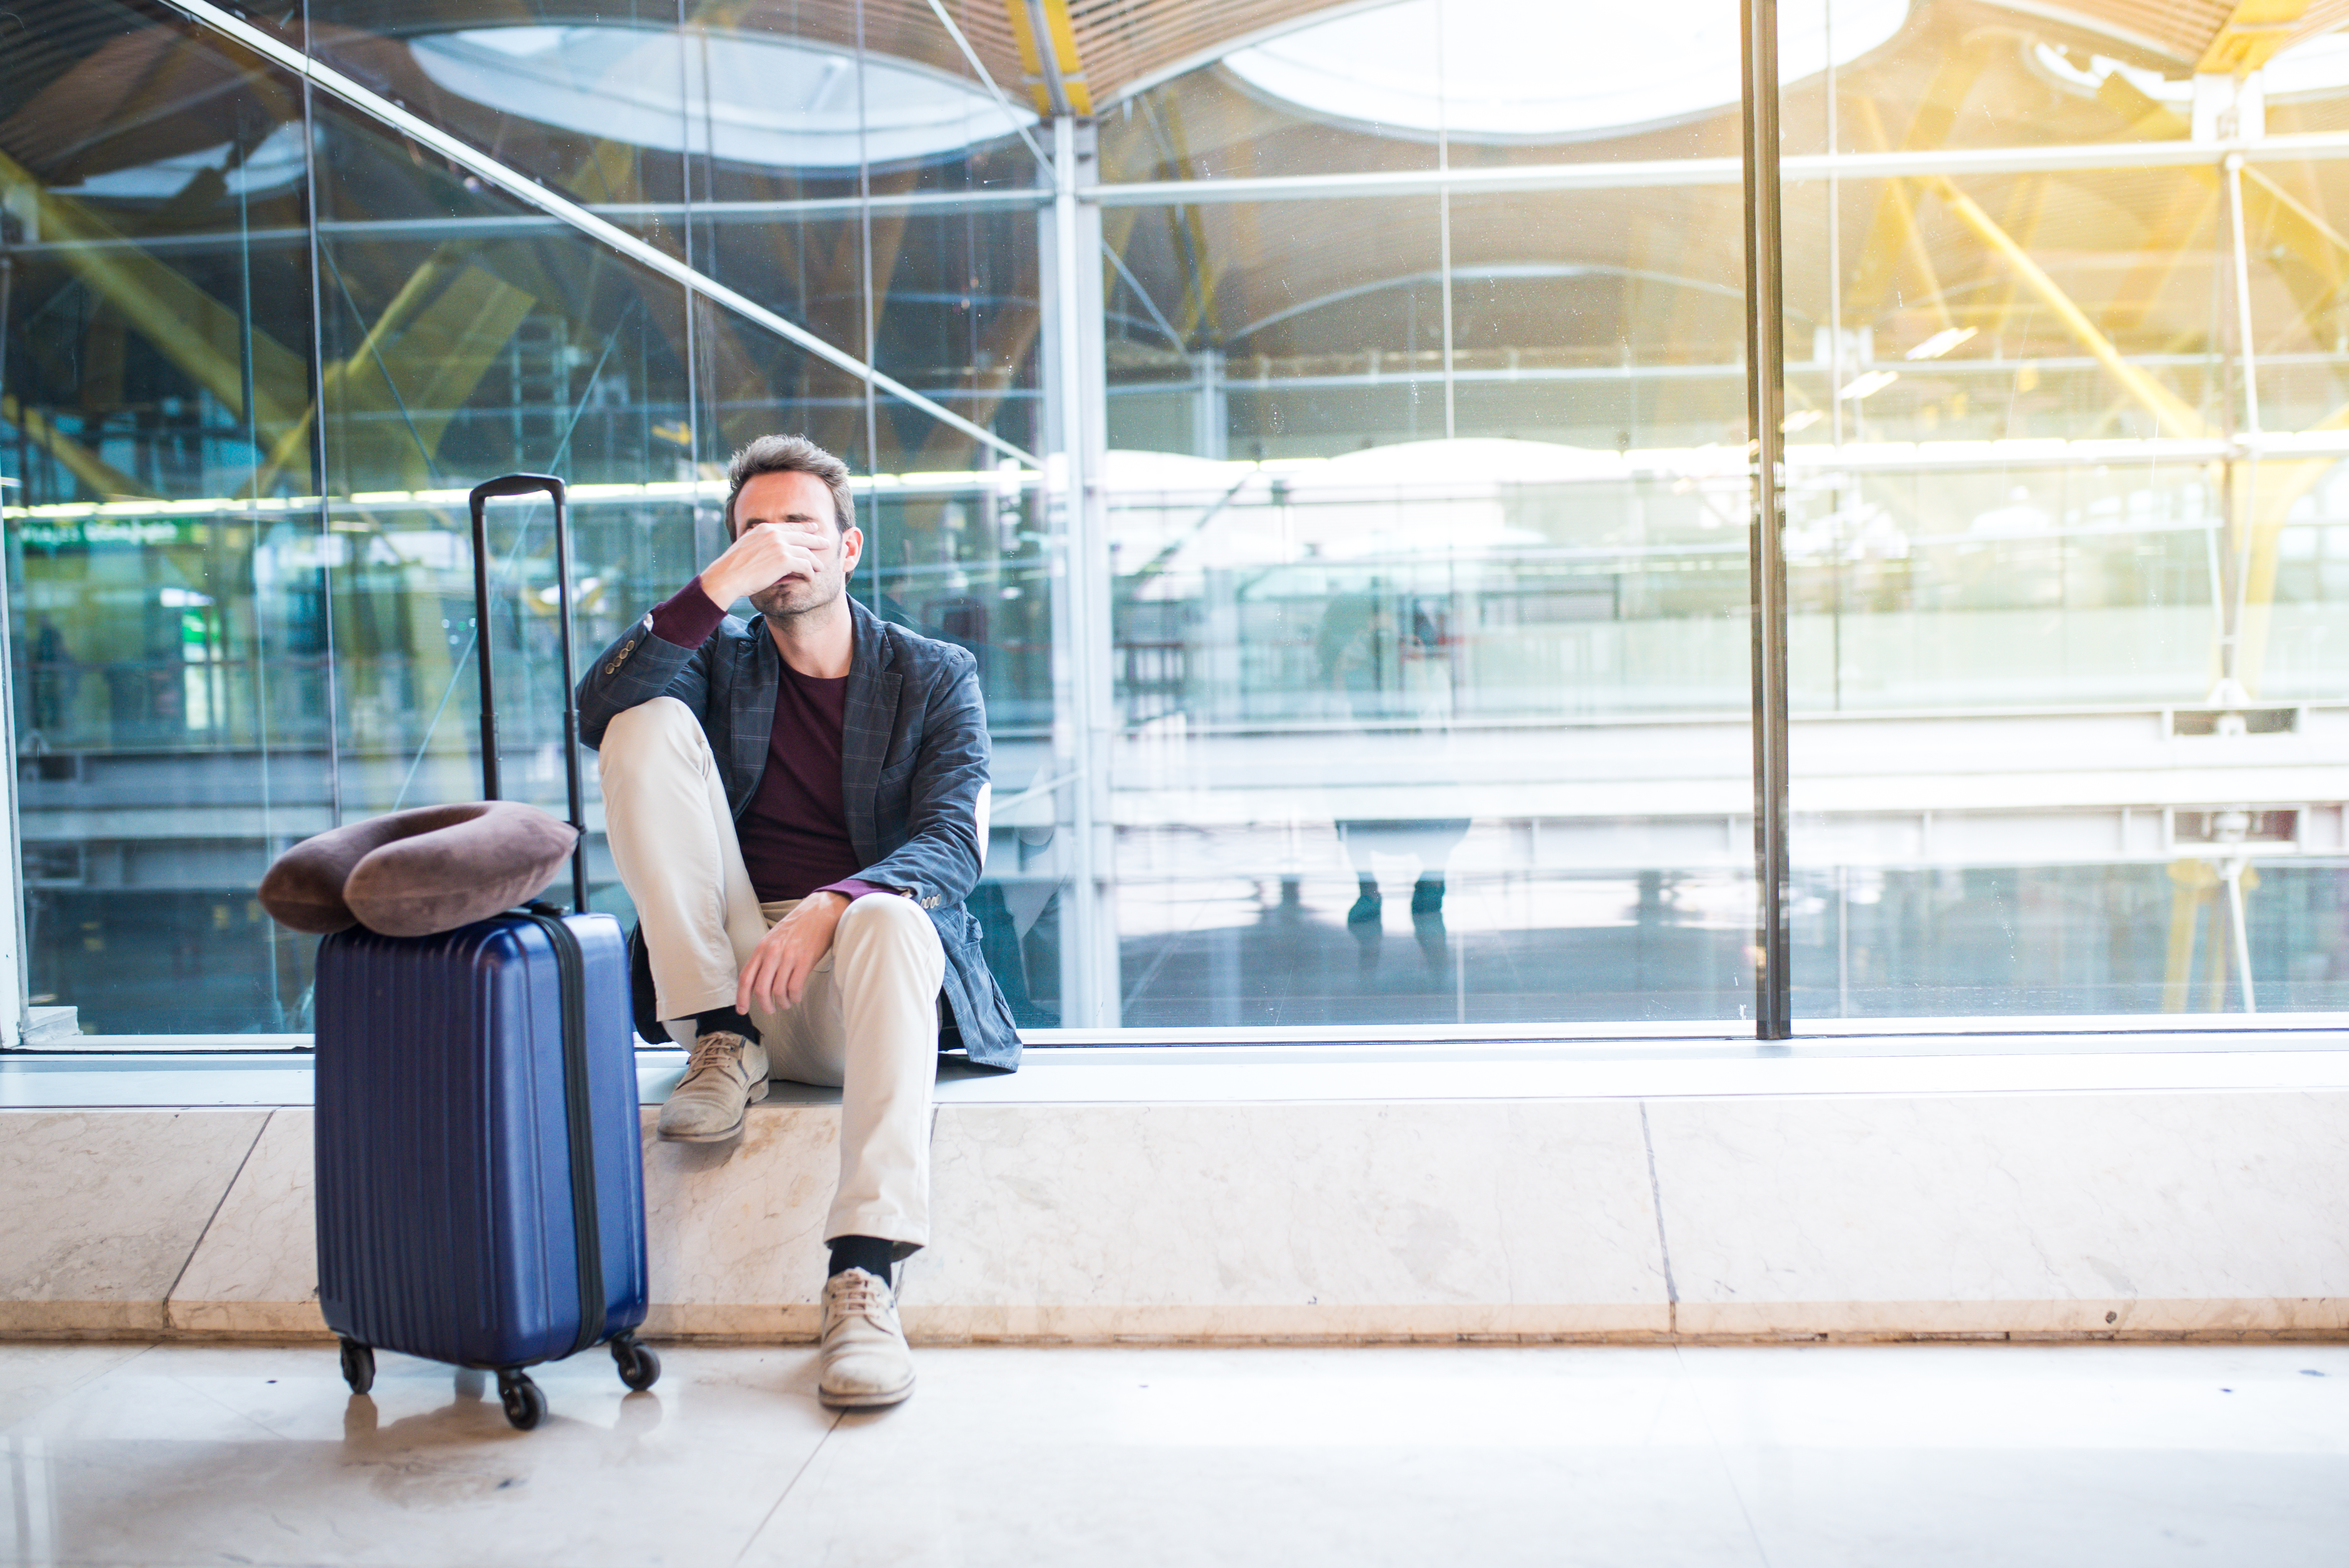 How jet lag could help put the brakes on brain disease